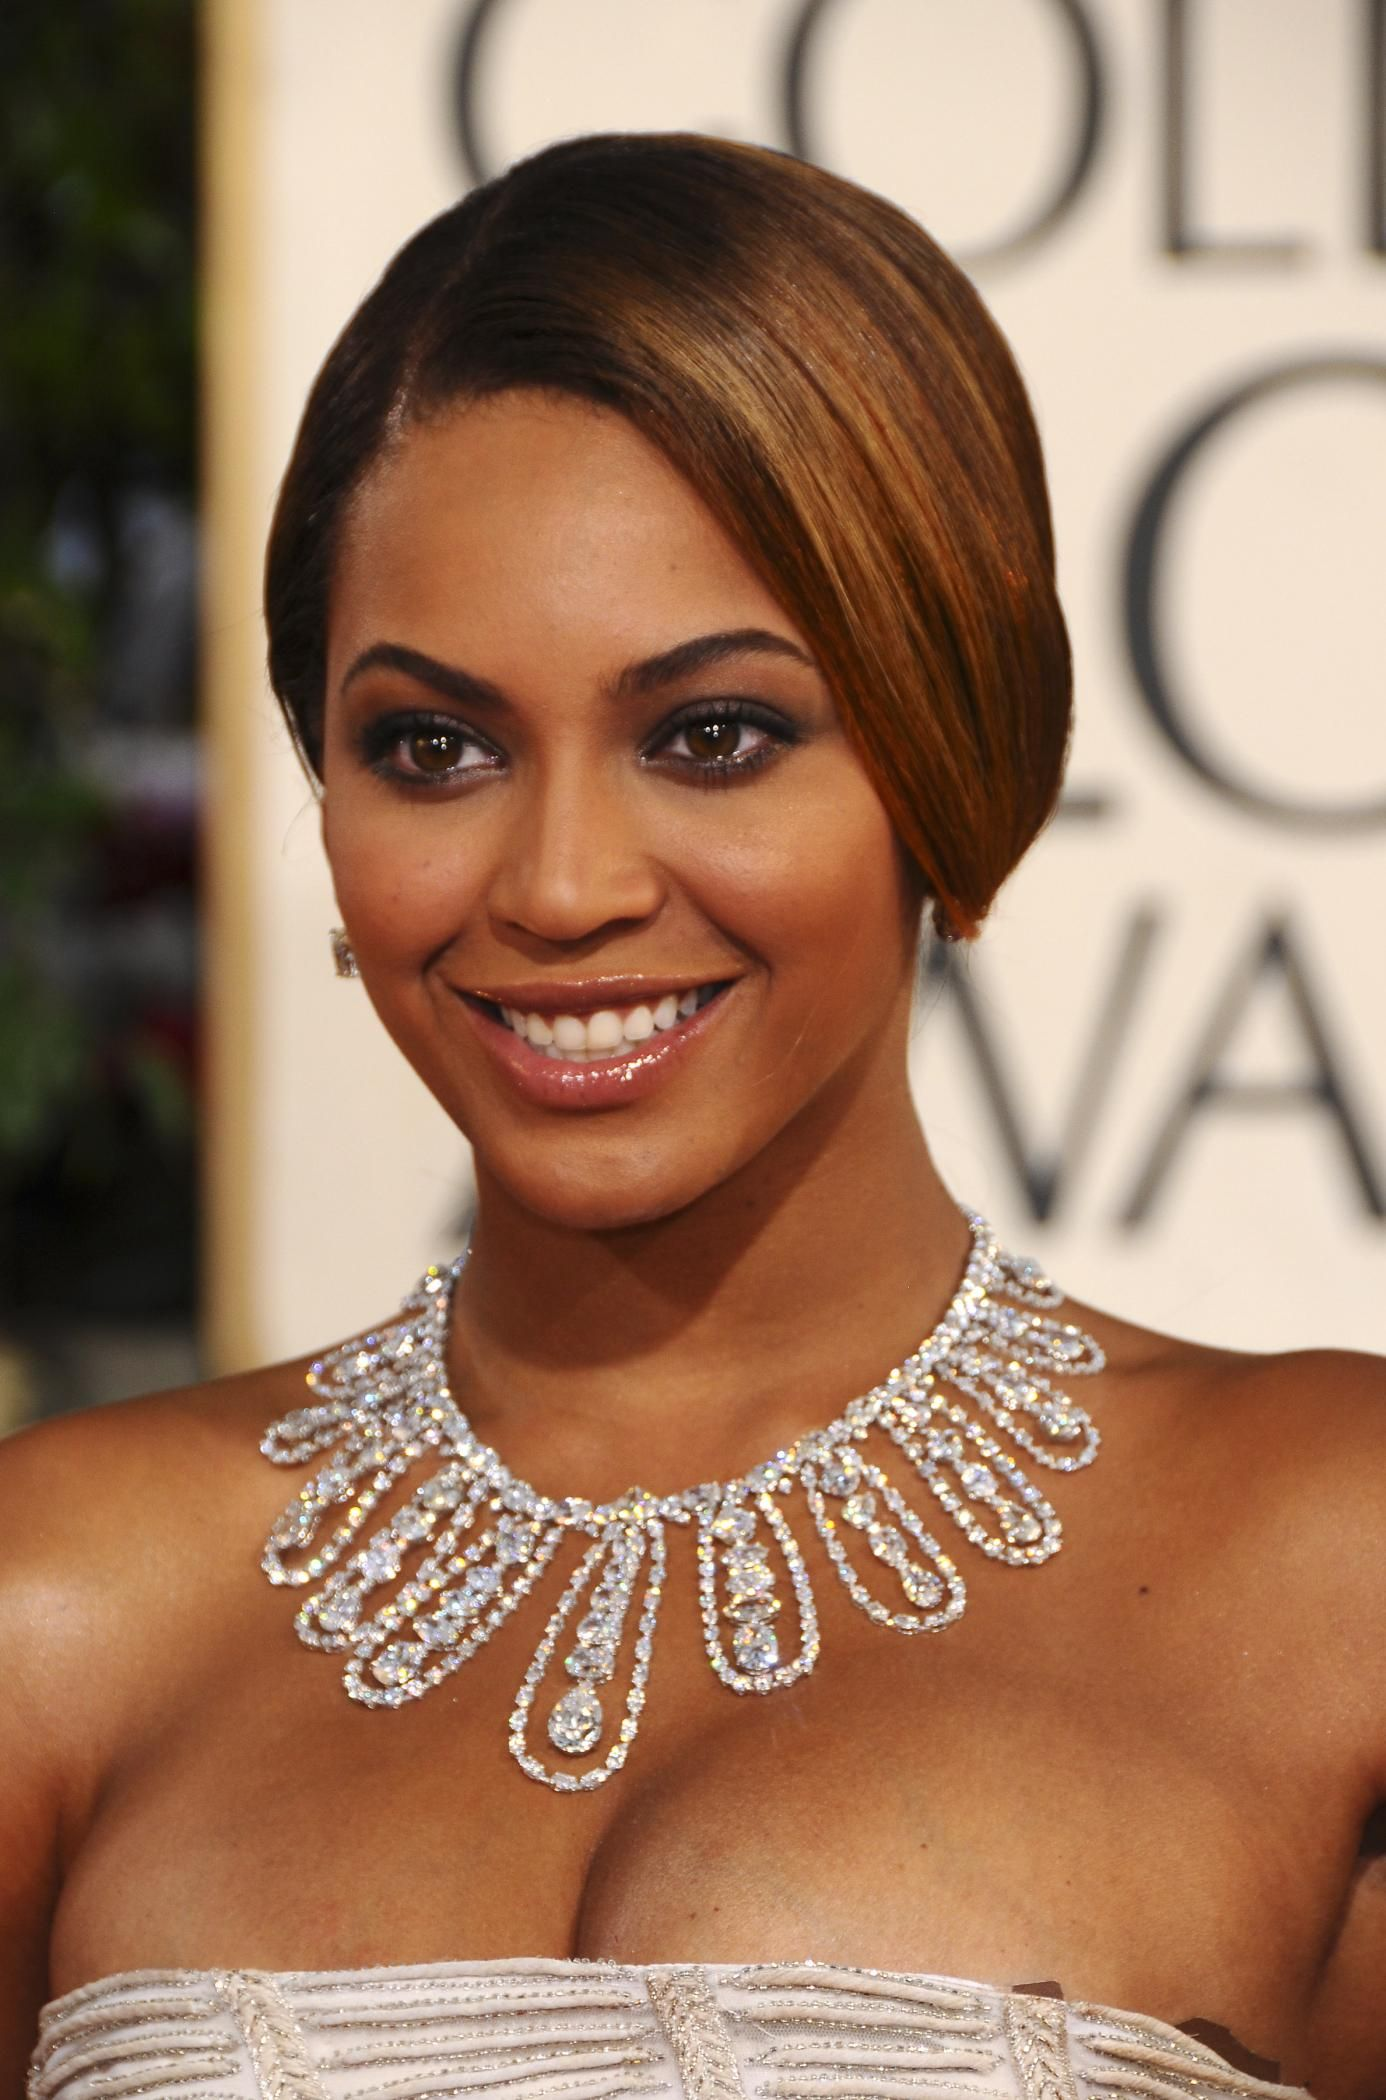 138160d1231963585-beyonce-white-dress-cleavage-66th-annual-golden